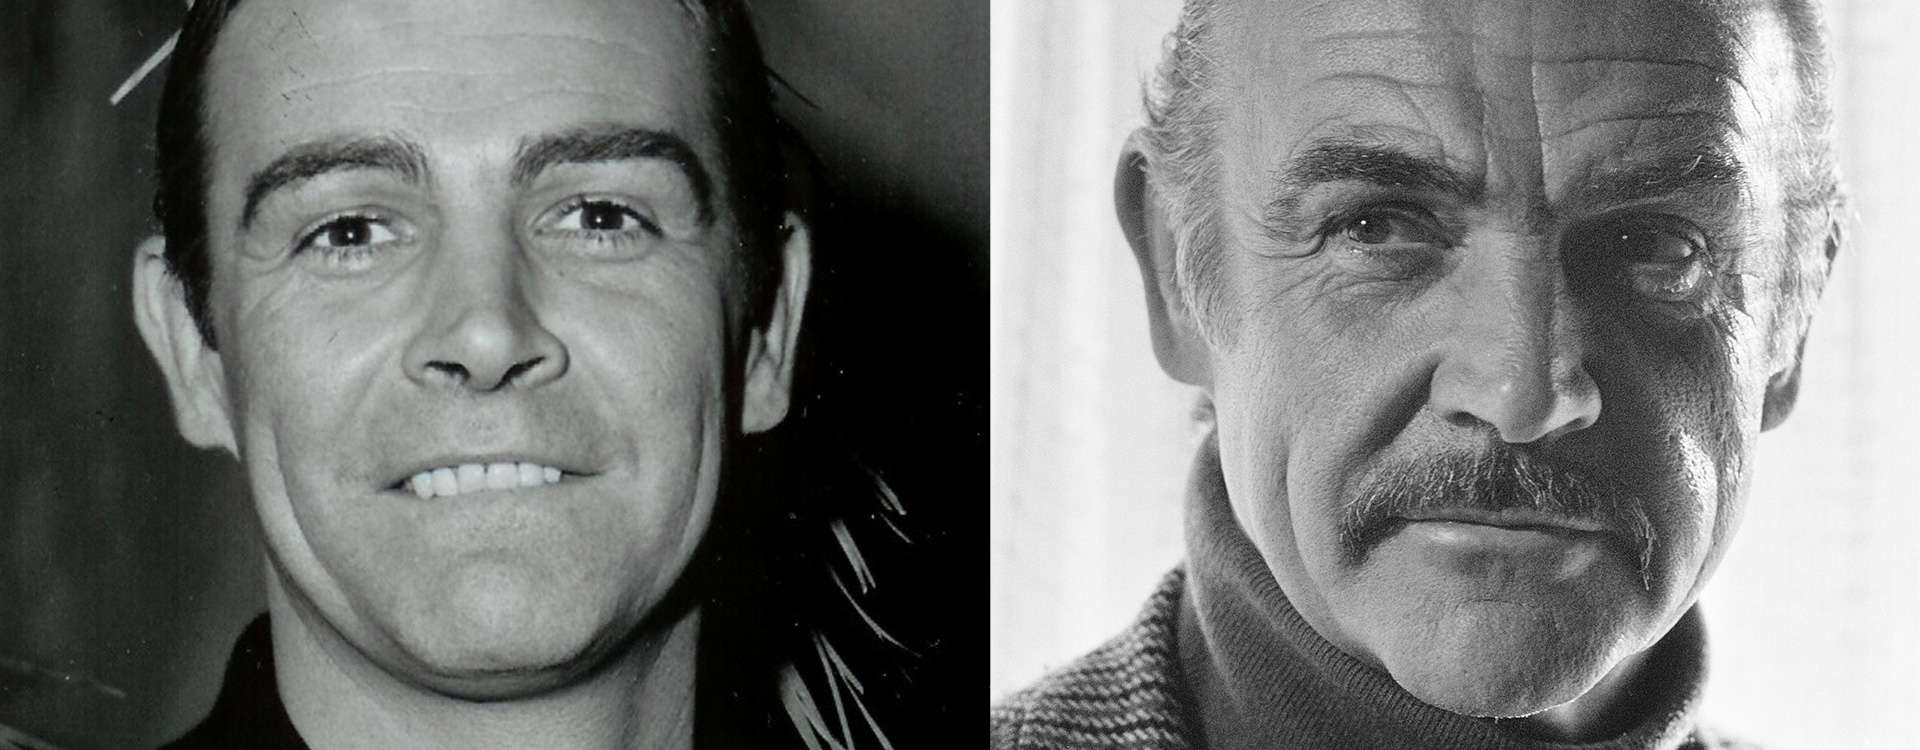 Sean Connery dies at 90 / B2-C1